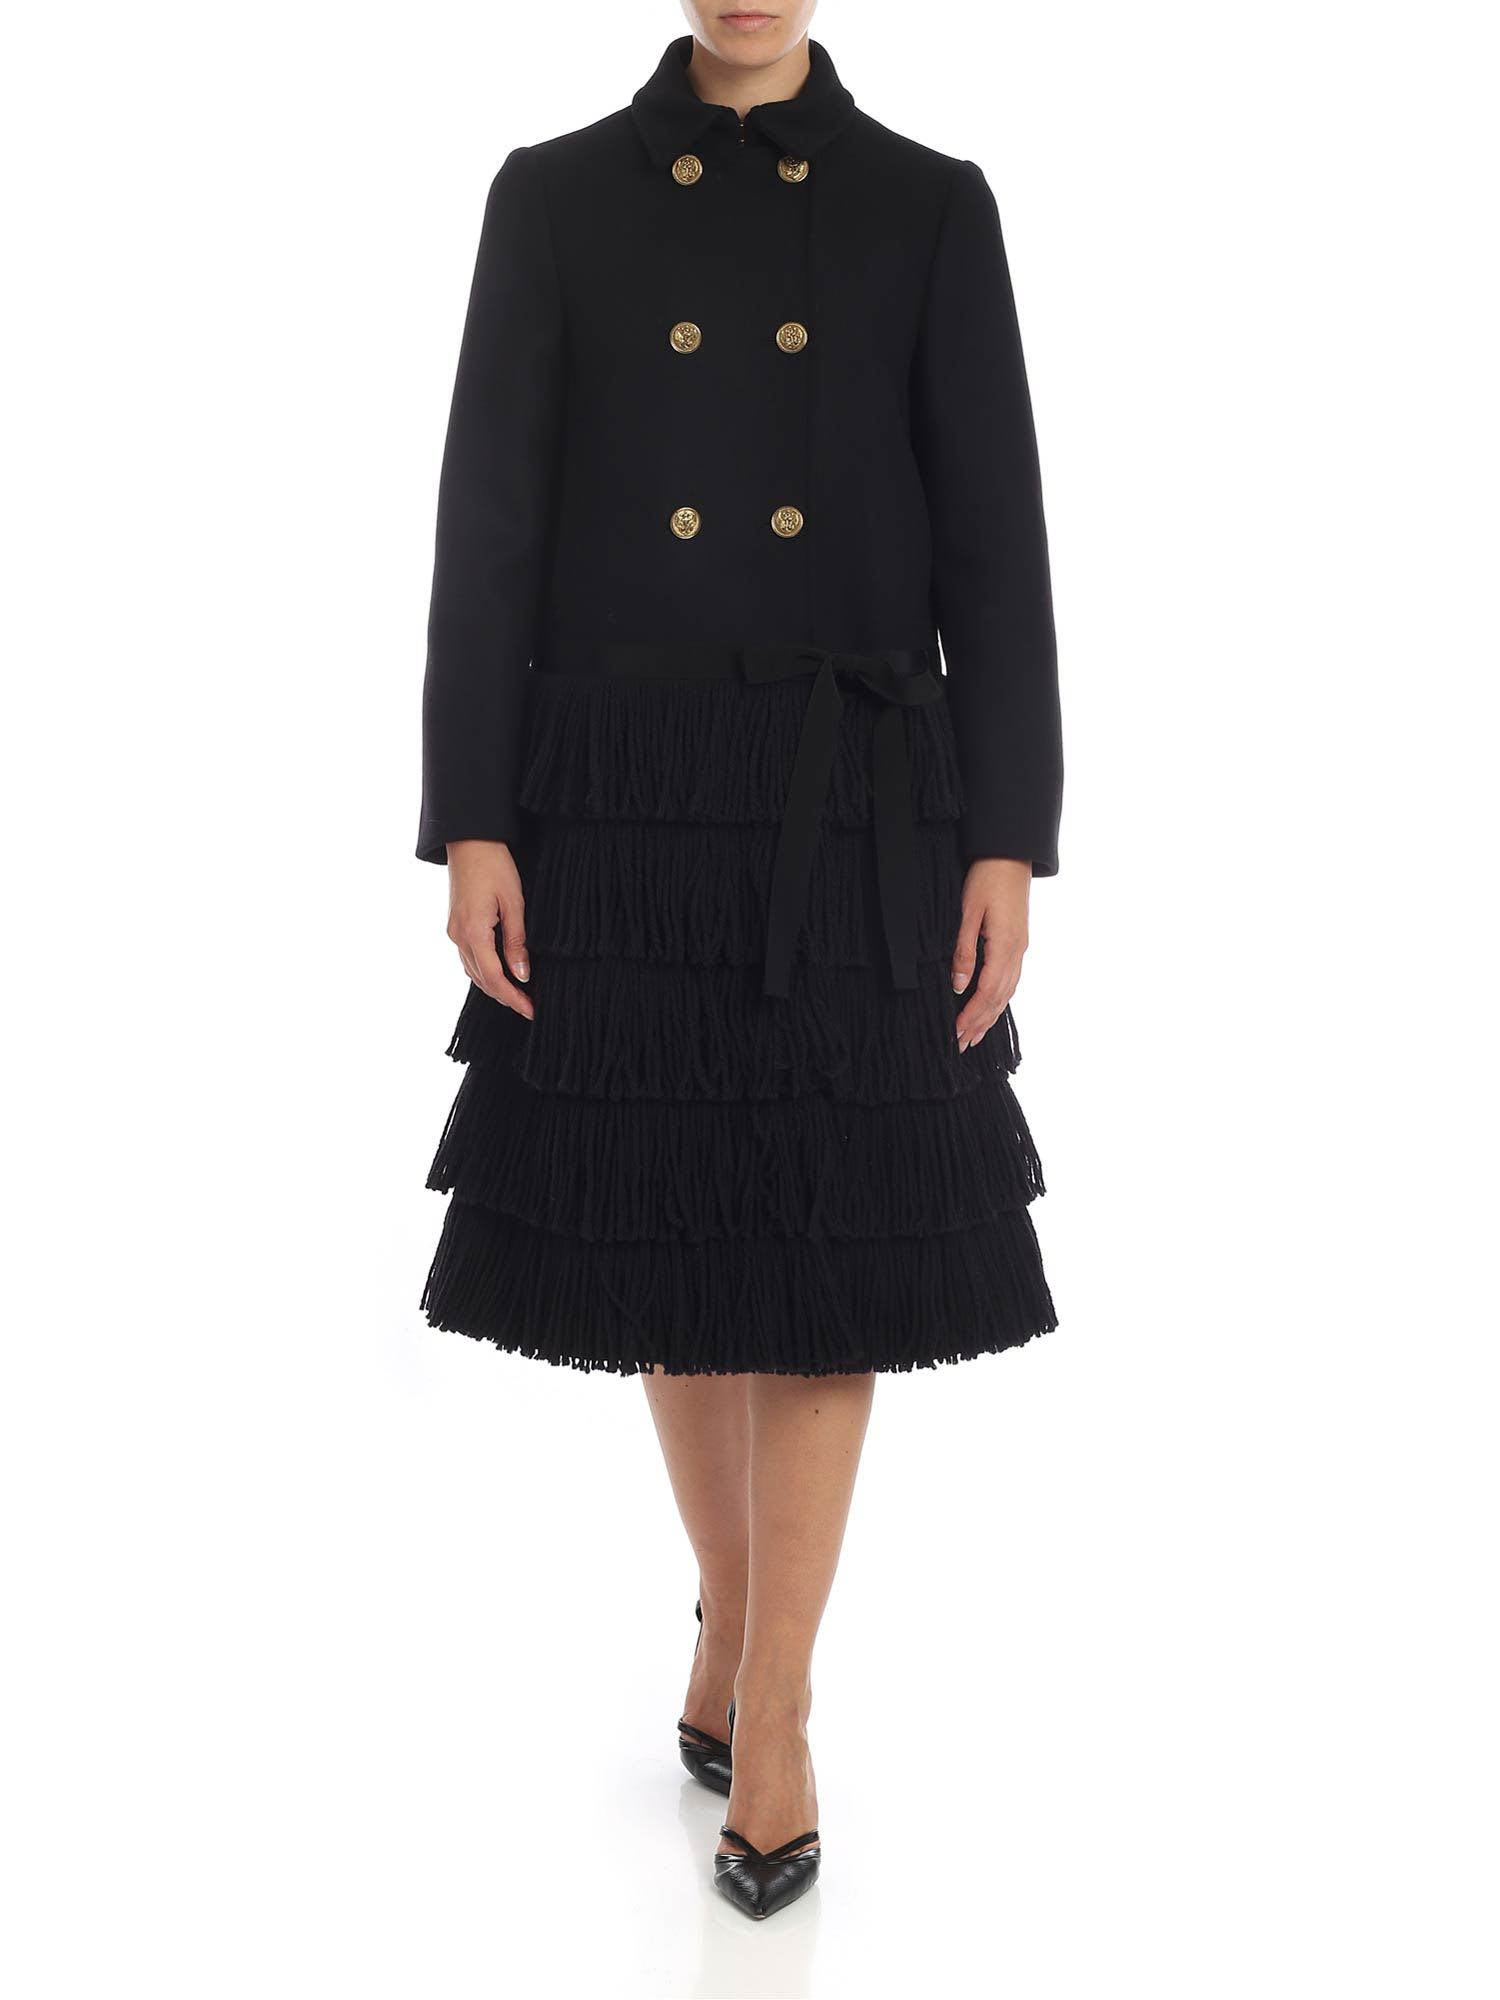 RED Valentino Fringed Wool Blend Coat